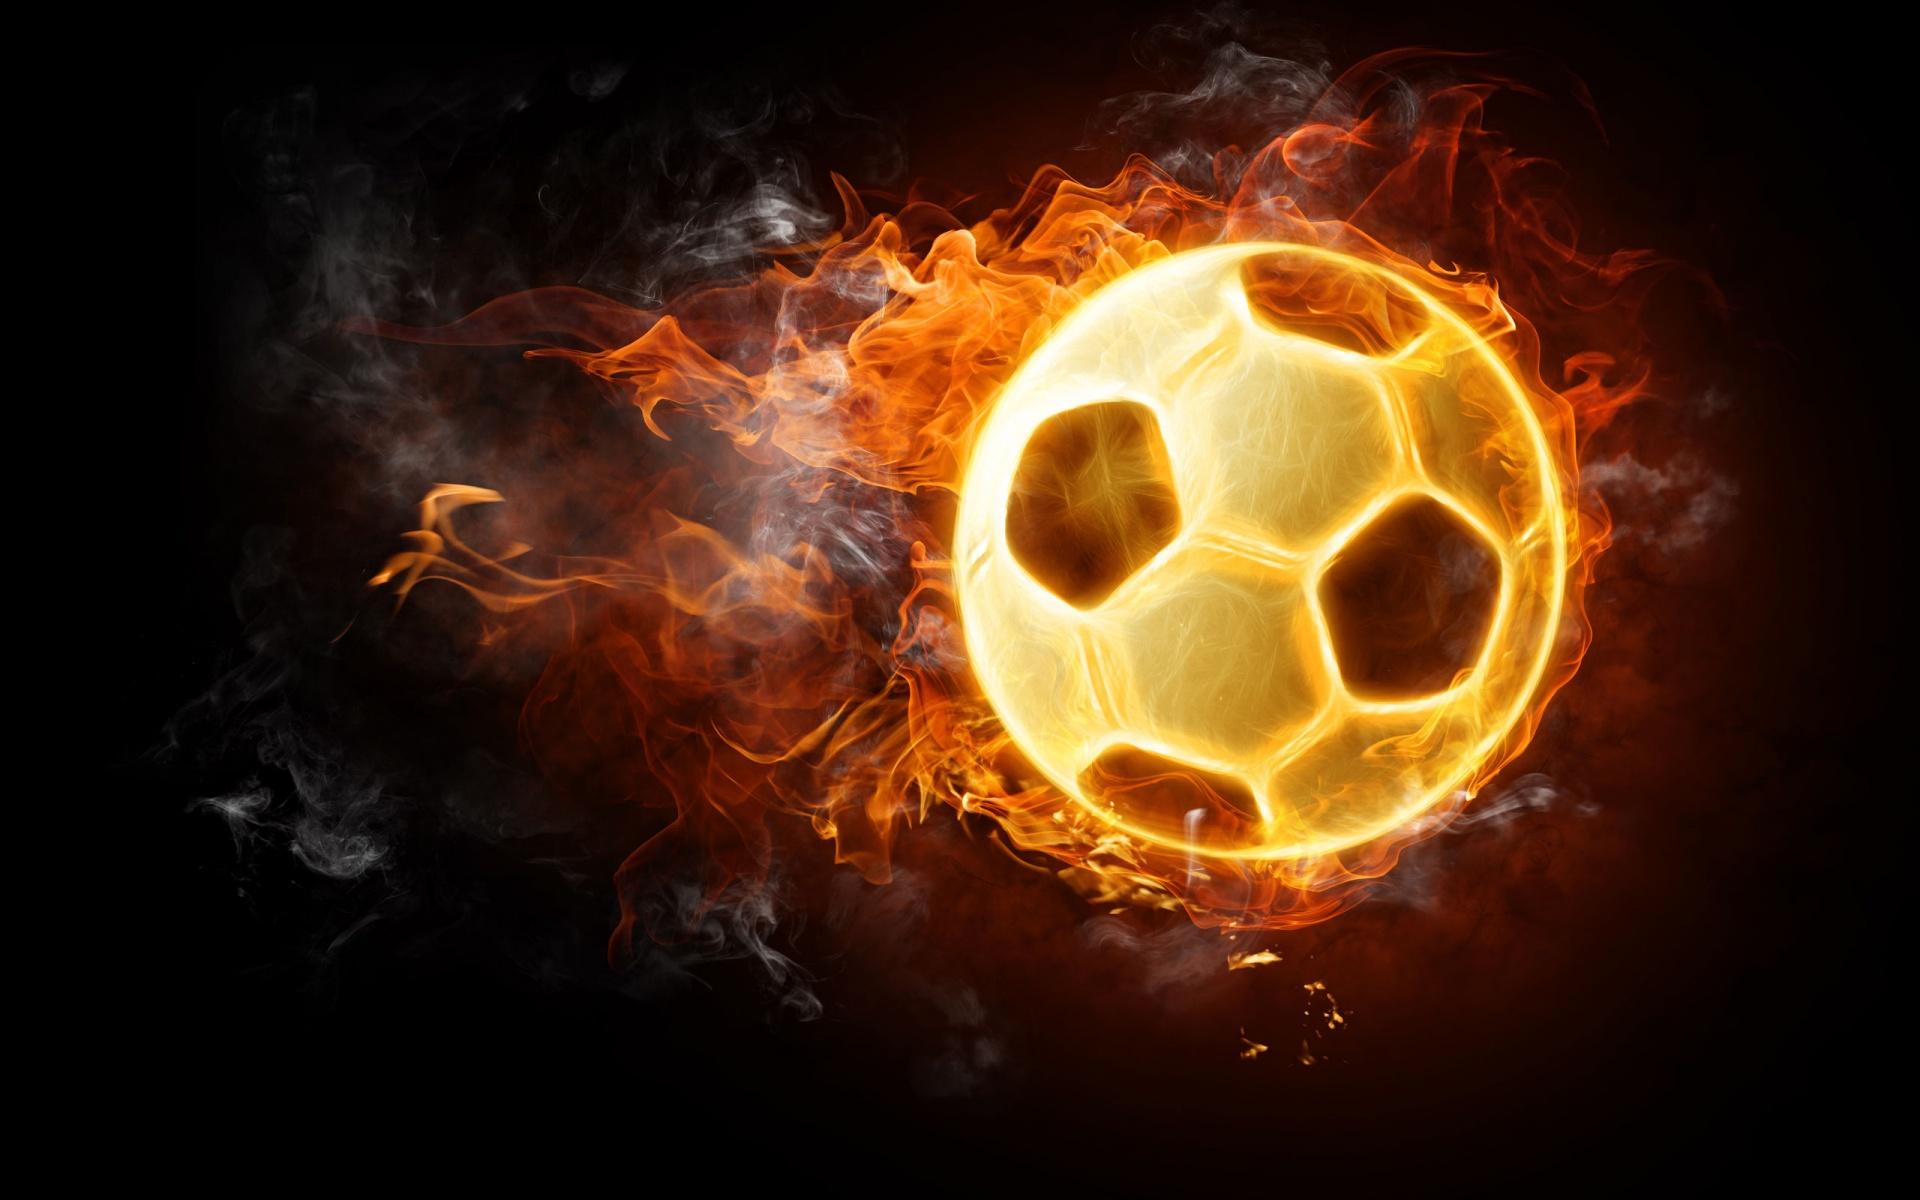 Burning Soccer Ball Wallpaper in 1920x1200 Widescreen